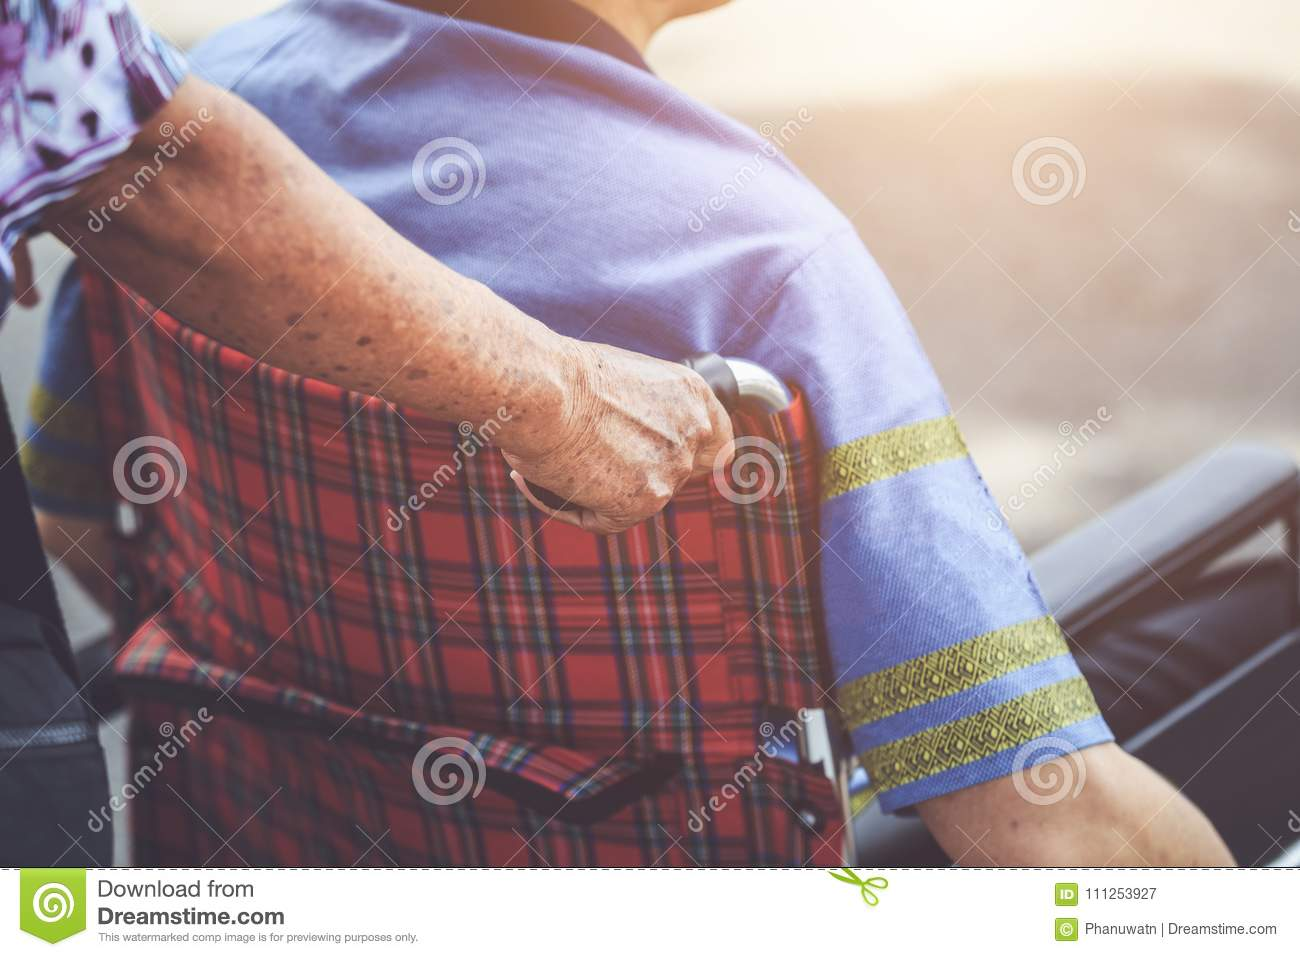 Image of: Disabled Es19 Close Up Hand Of Old People On Wheelchair Of Disabled People Pngtree Hand Of Old People On Wheelchair Of Disabled People Stock Image